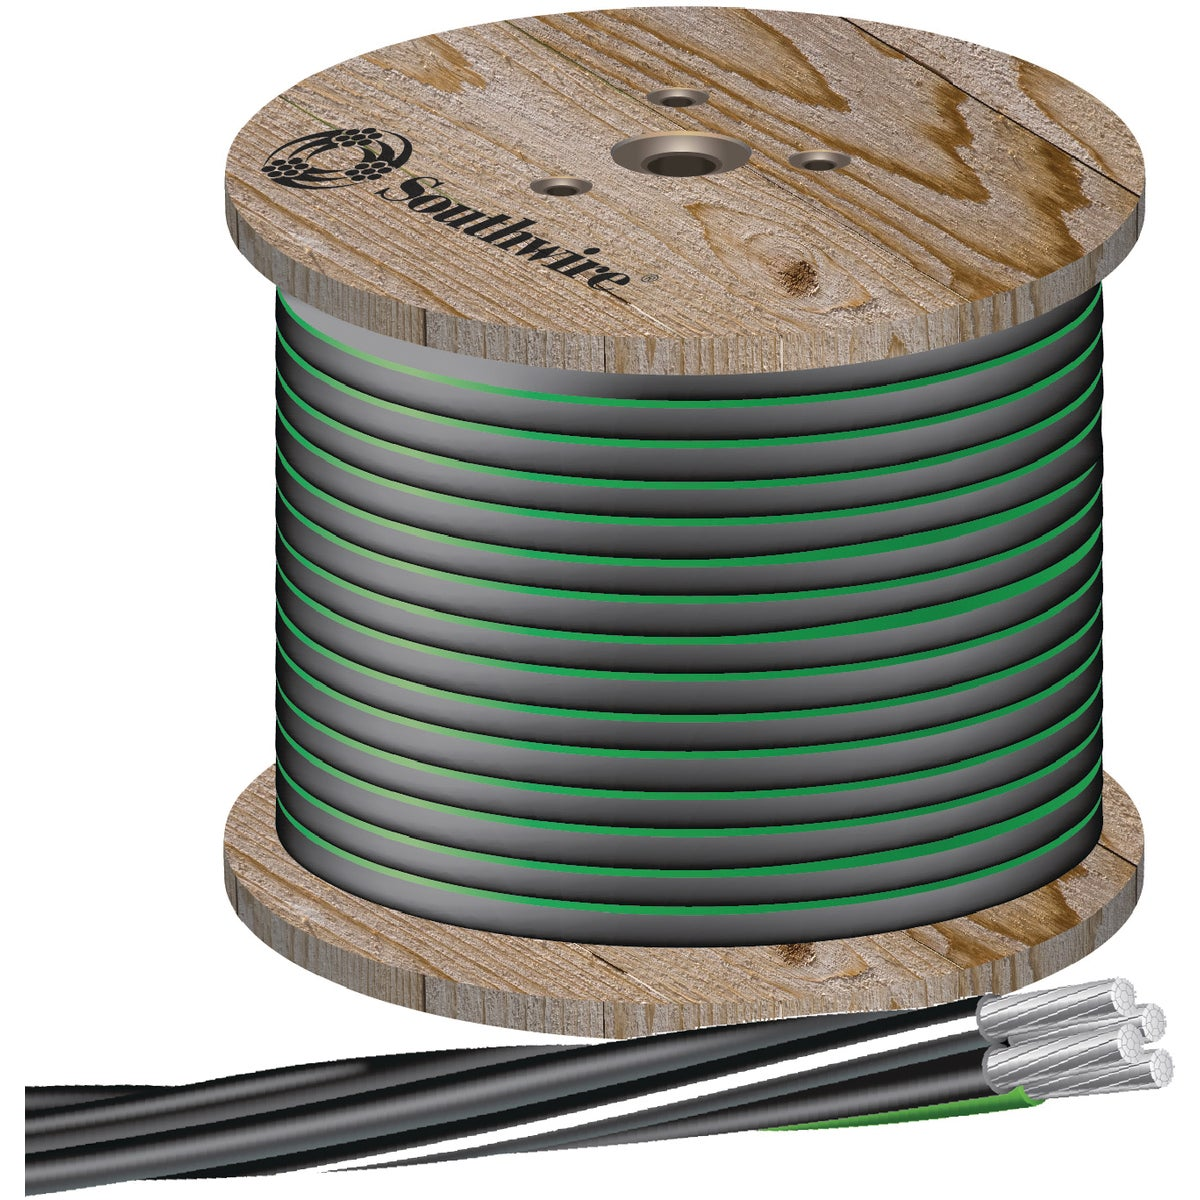 500' 4/0-4/0-2/0-4 MHF - 30161401 by Southwire Company